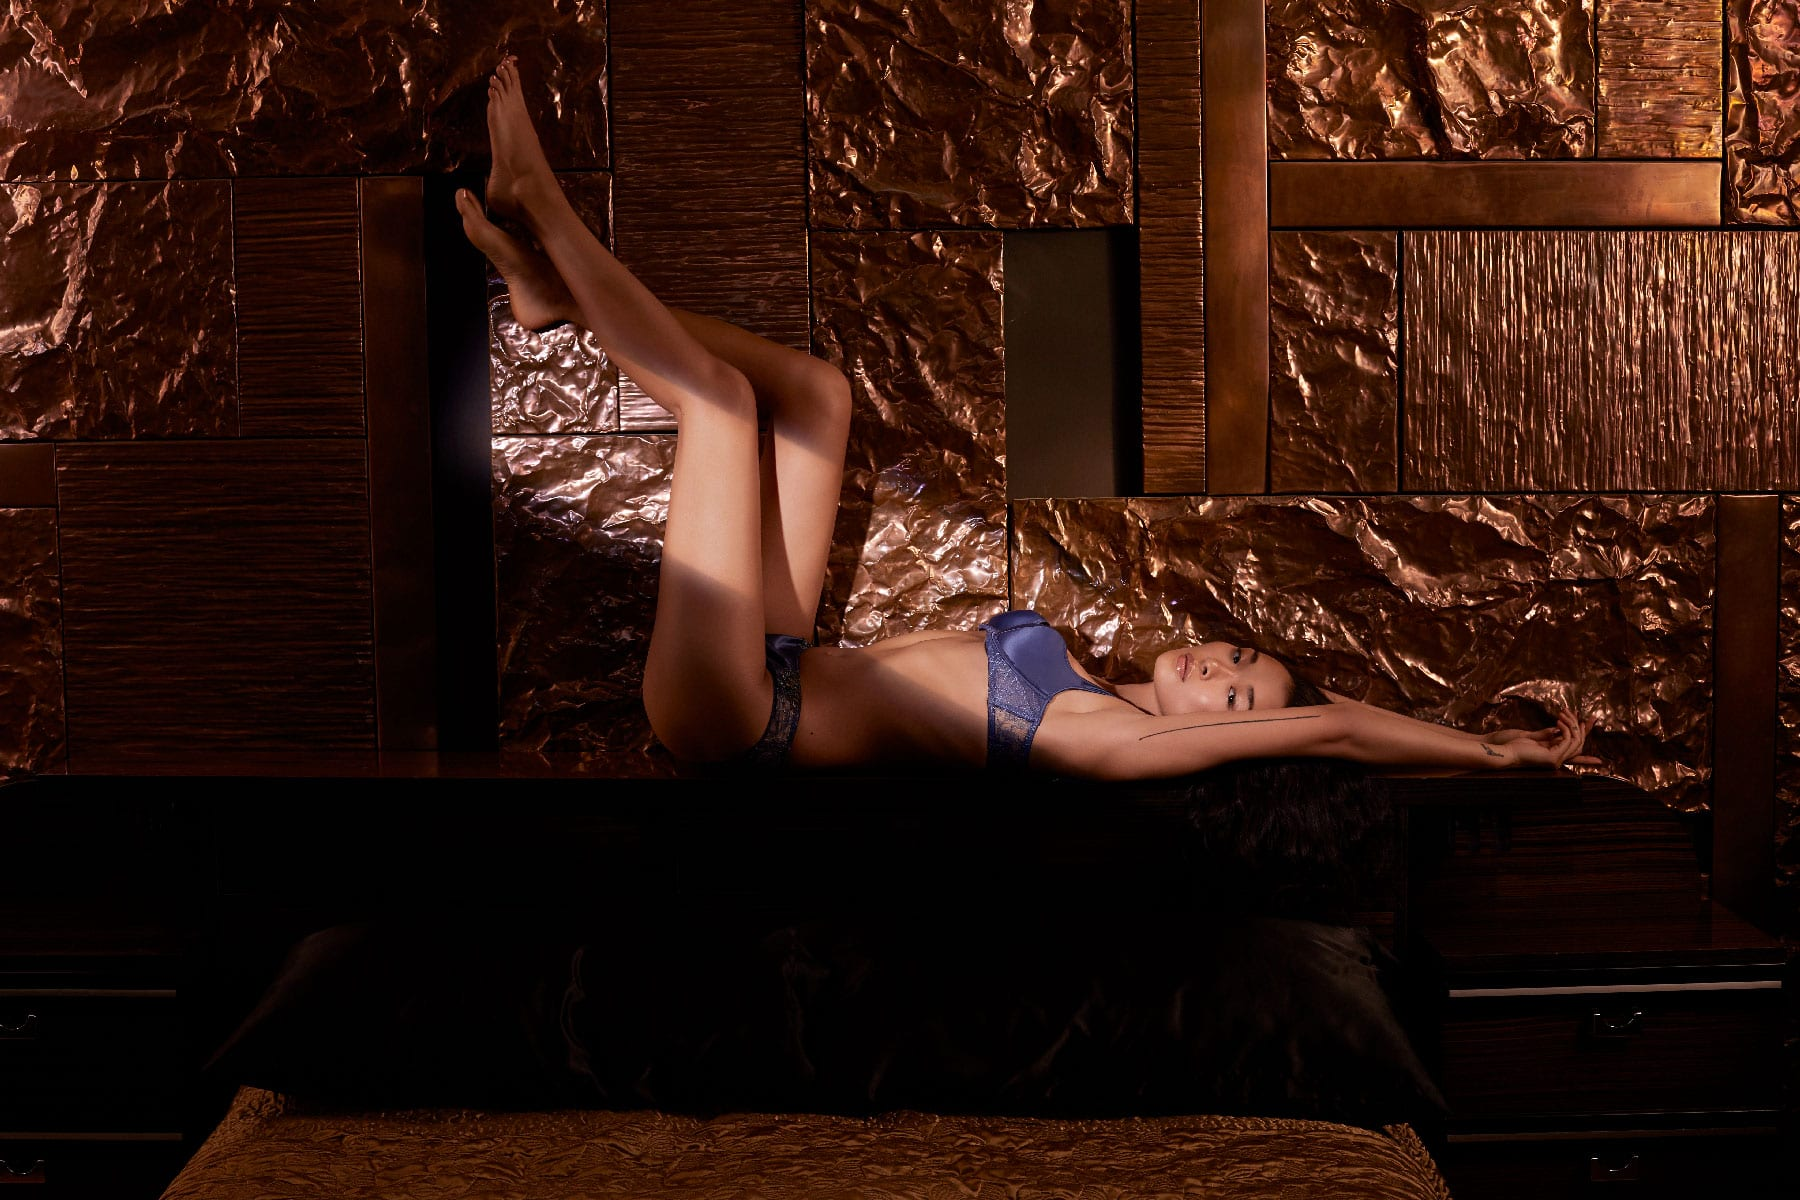 Claire Harrison Beauty Photographer, Hair Photographer, Swimwear Photographer, Lingerie Photographer, Advertising & Editorial Photographer. based London UK